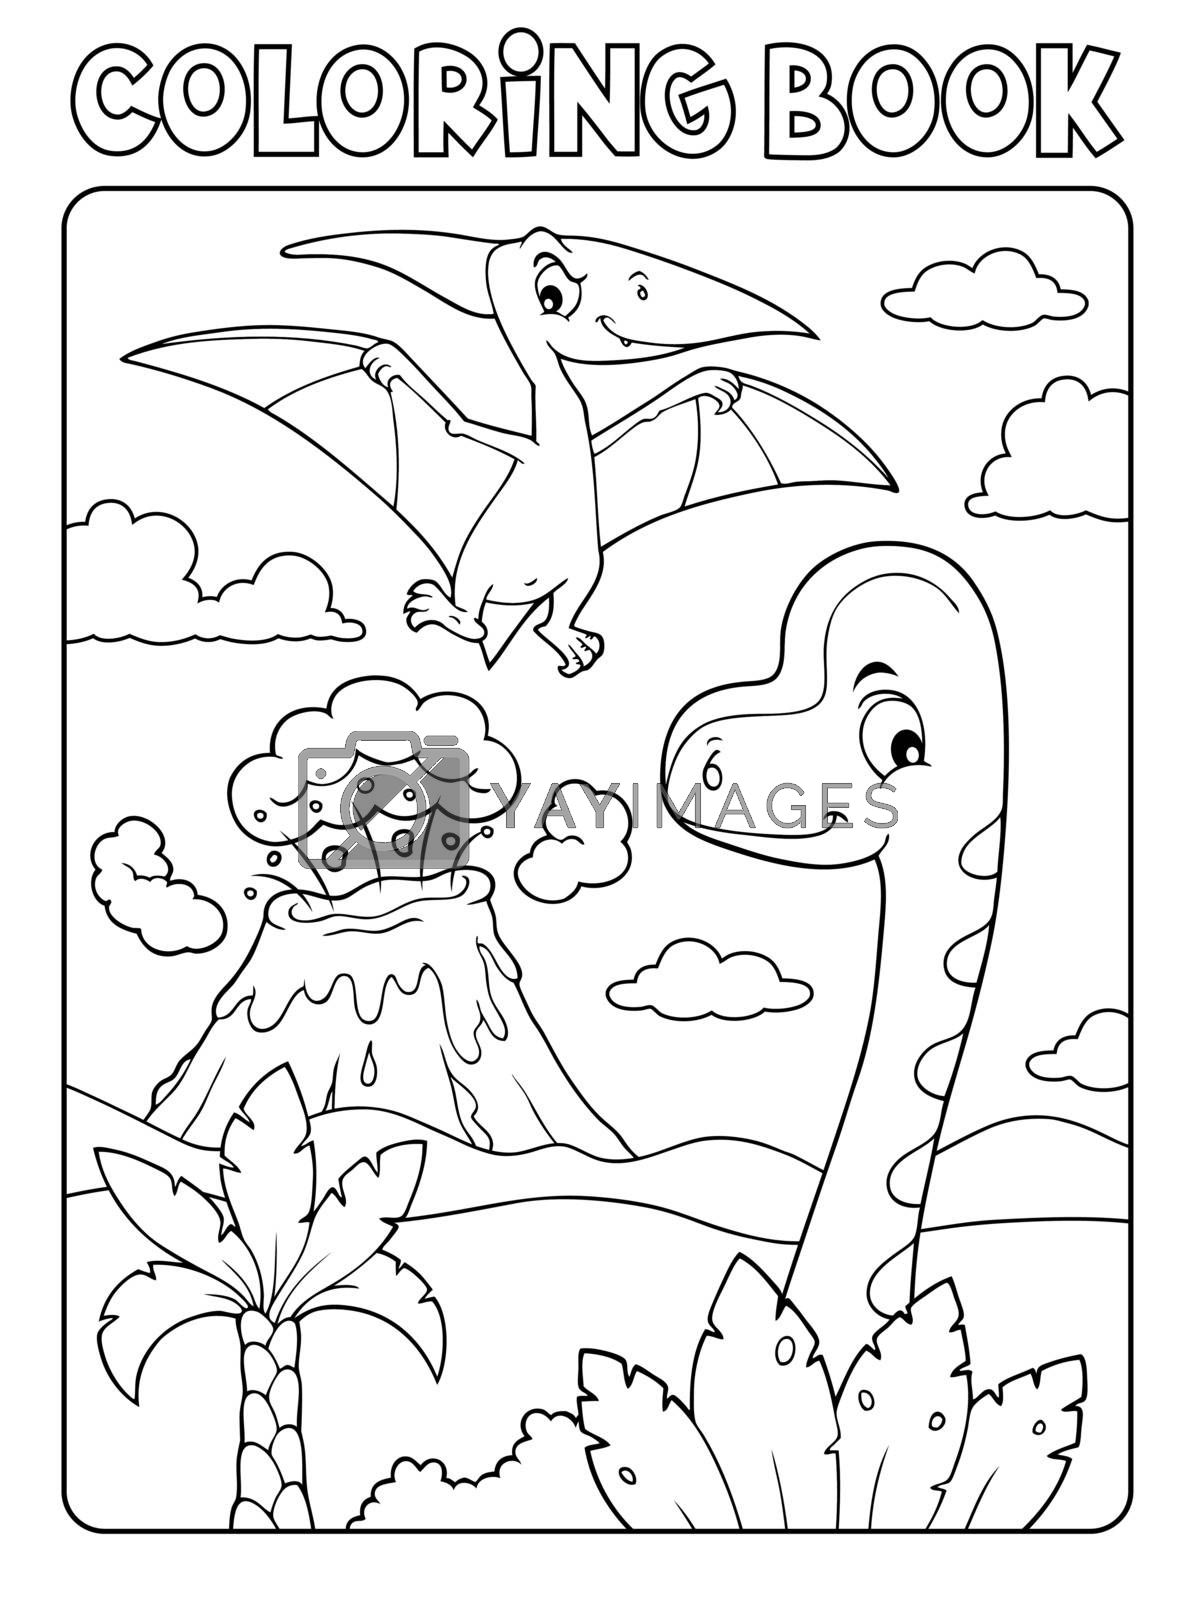 Coloring book dinosaur composition image 5 by clairev